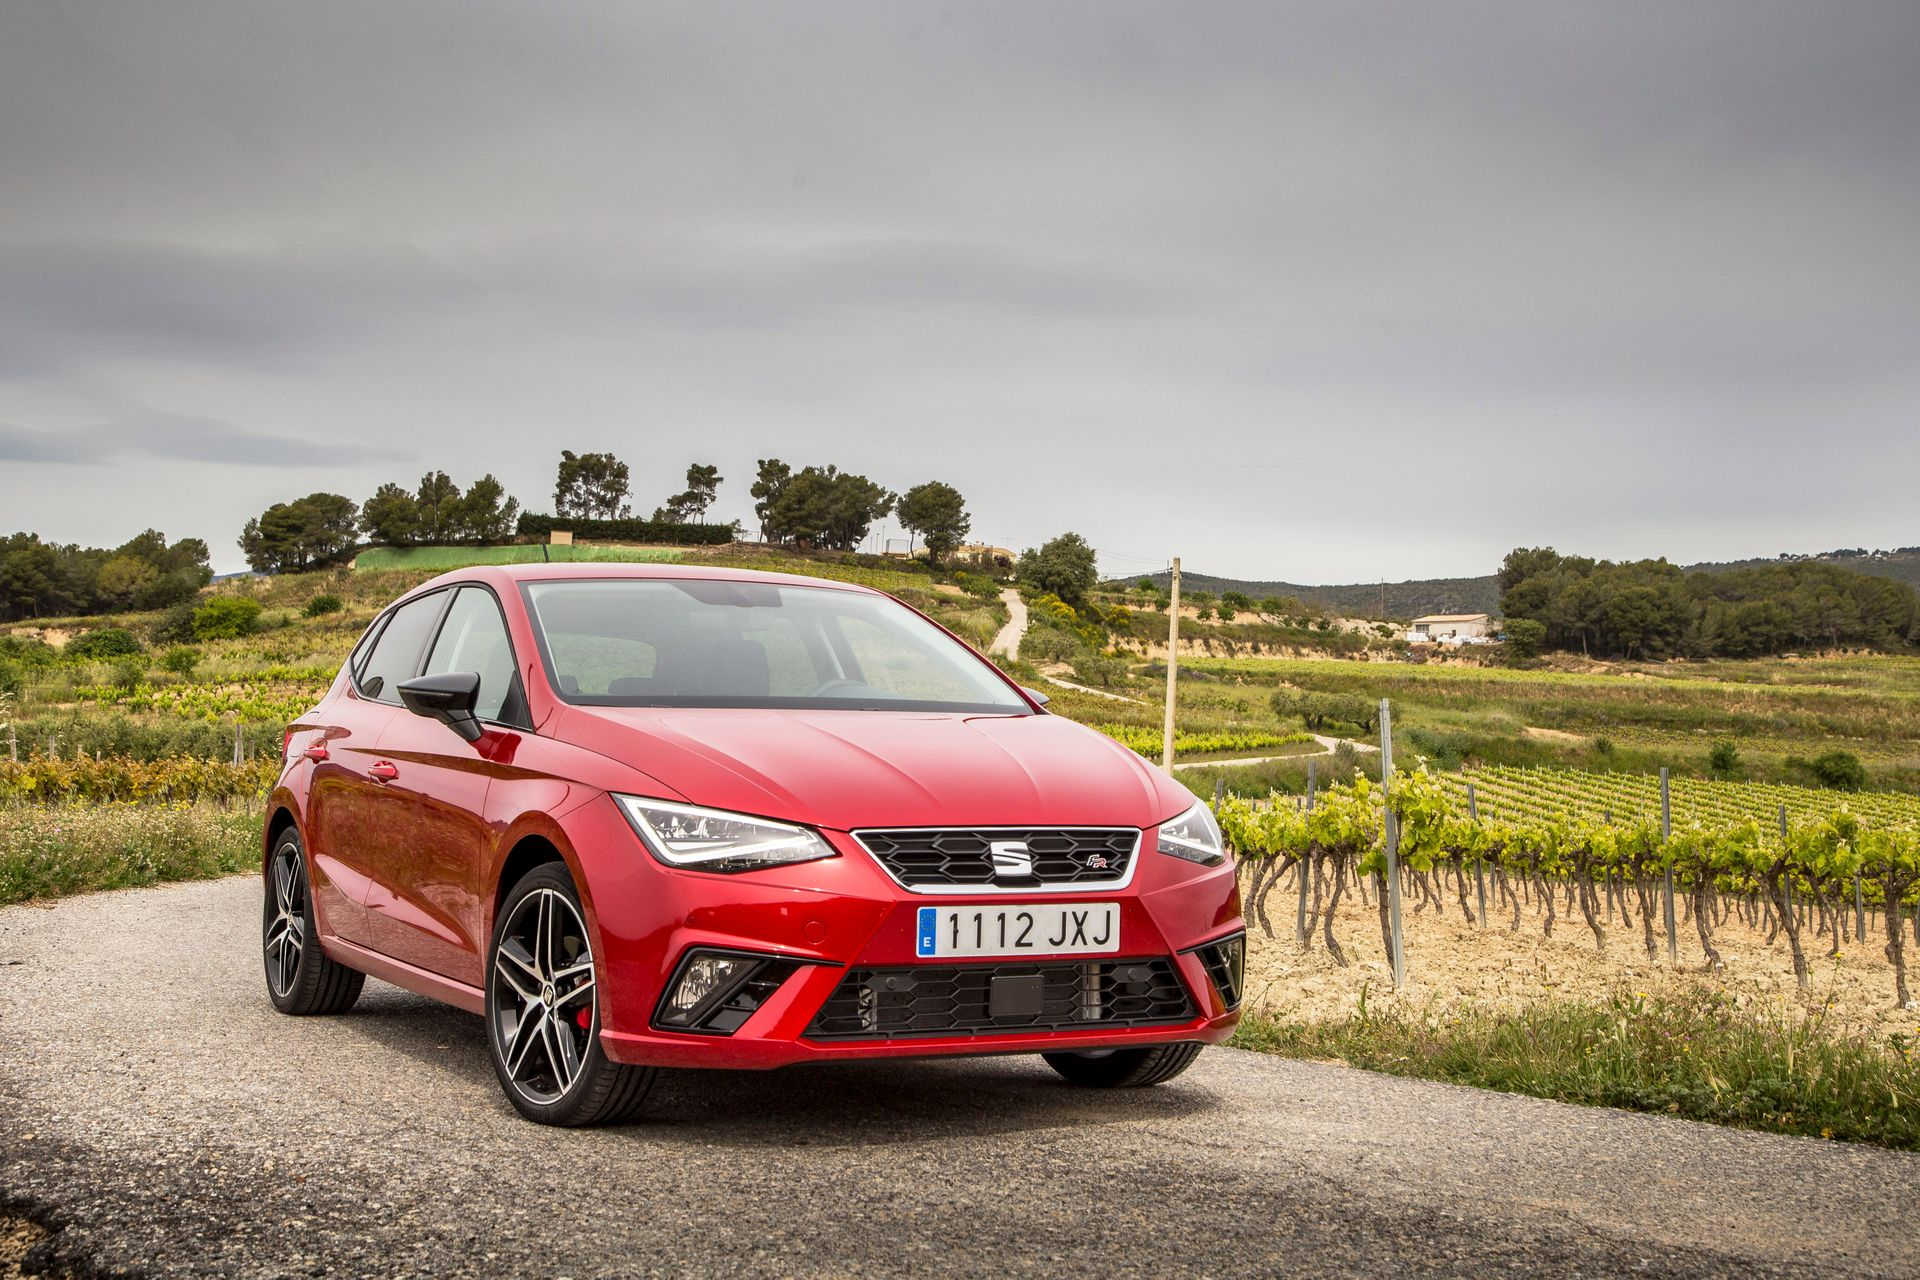 2018 seat ibiza fr review the supermini that 39 s sweeter with less power. Black Bedroom Furniture Sets. Home Design Ideas